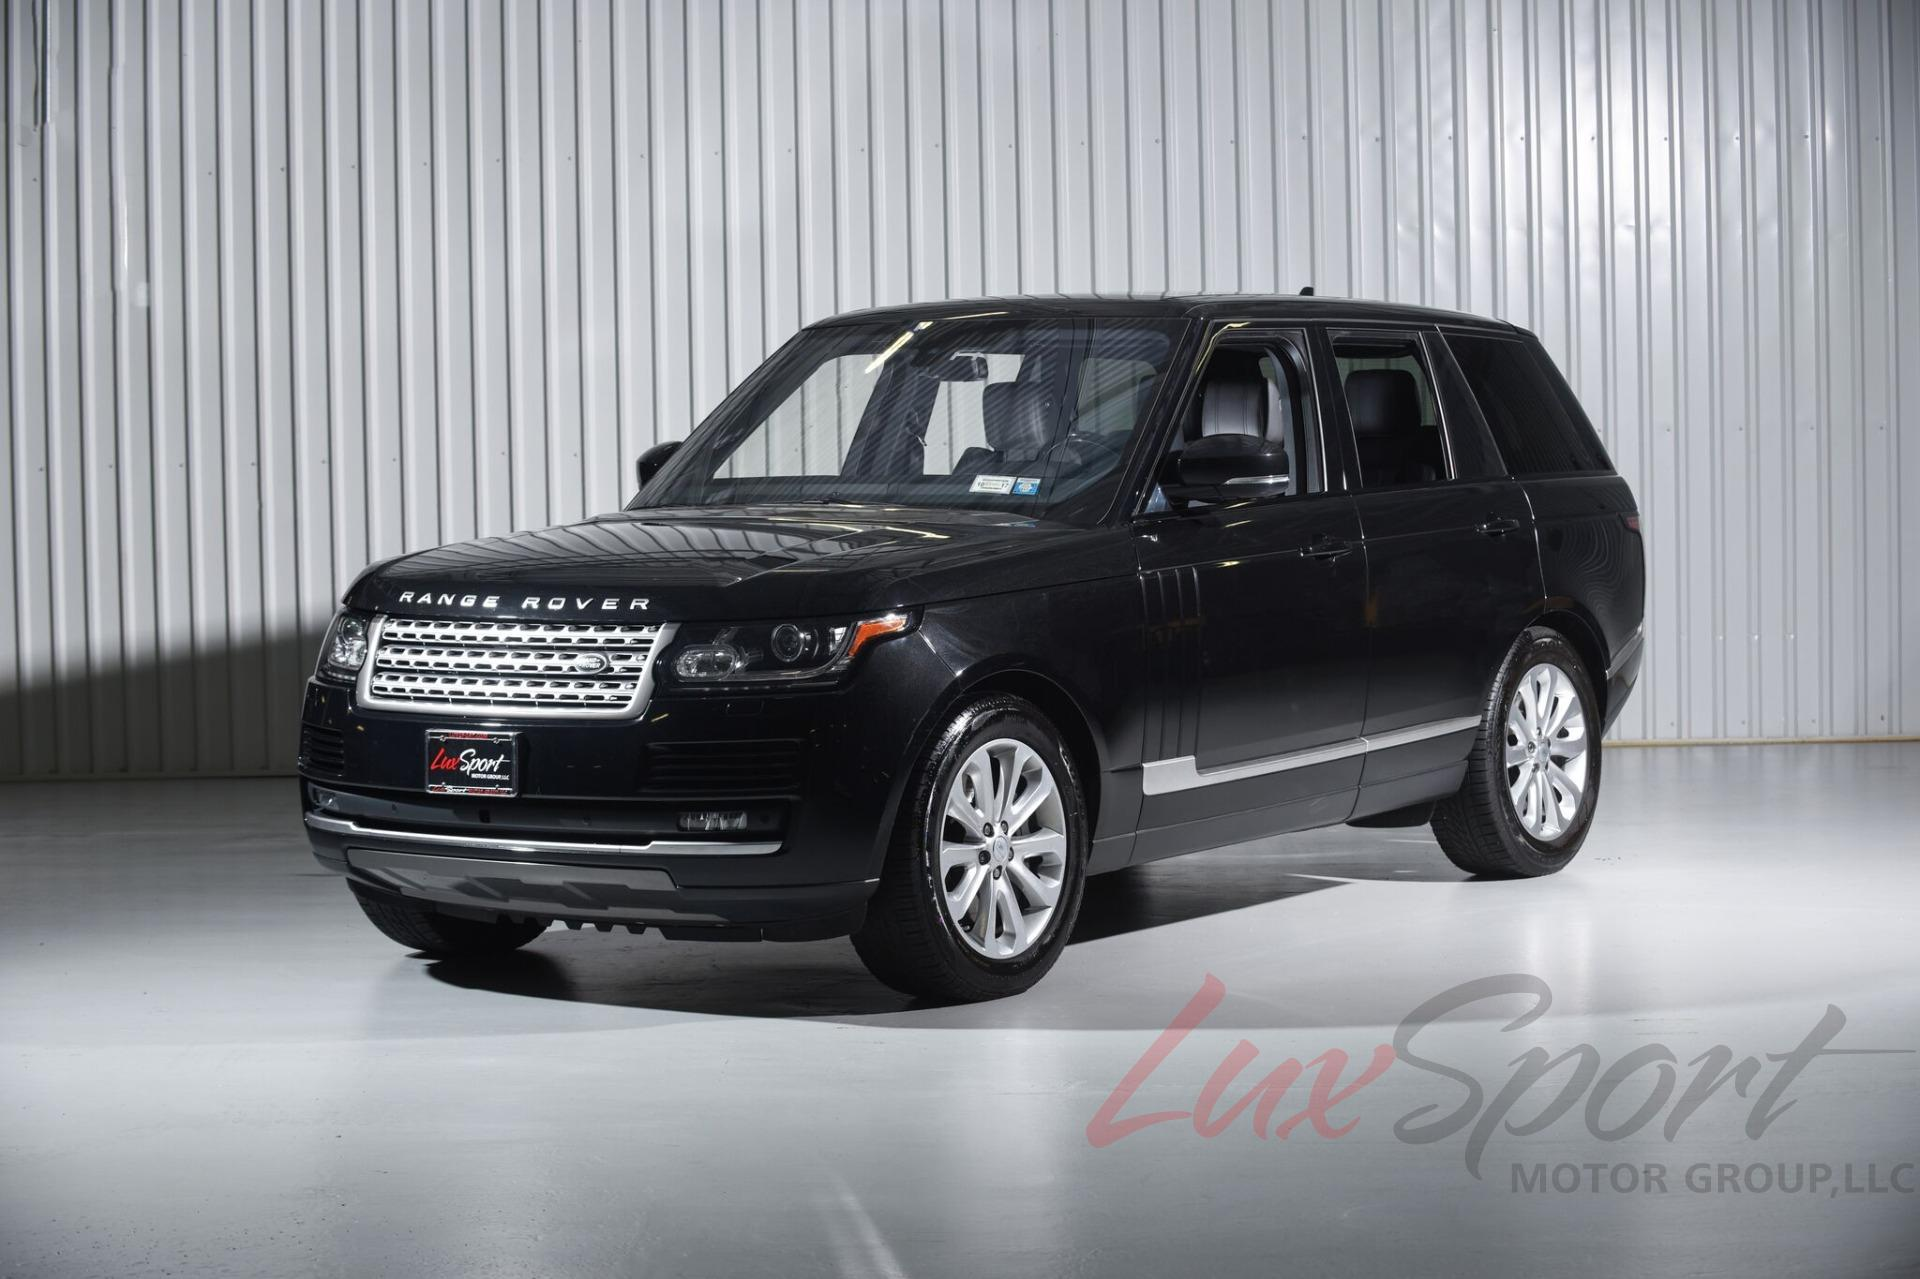 2016 Land Rover Range Rover HSE HSE Stock for sale near